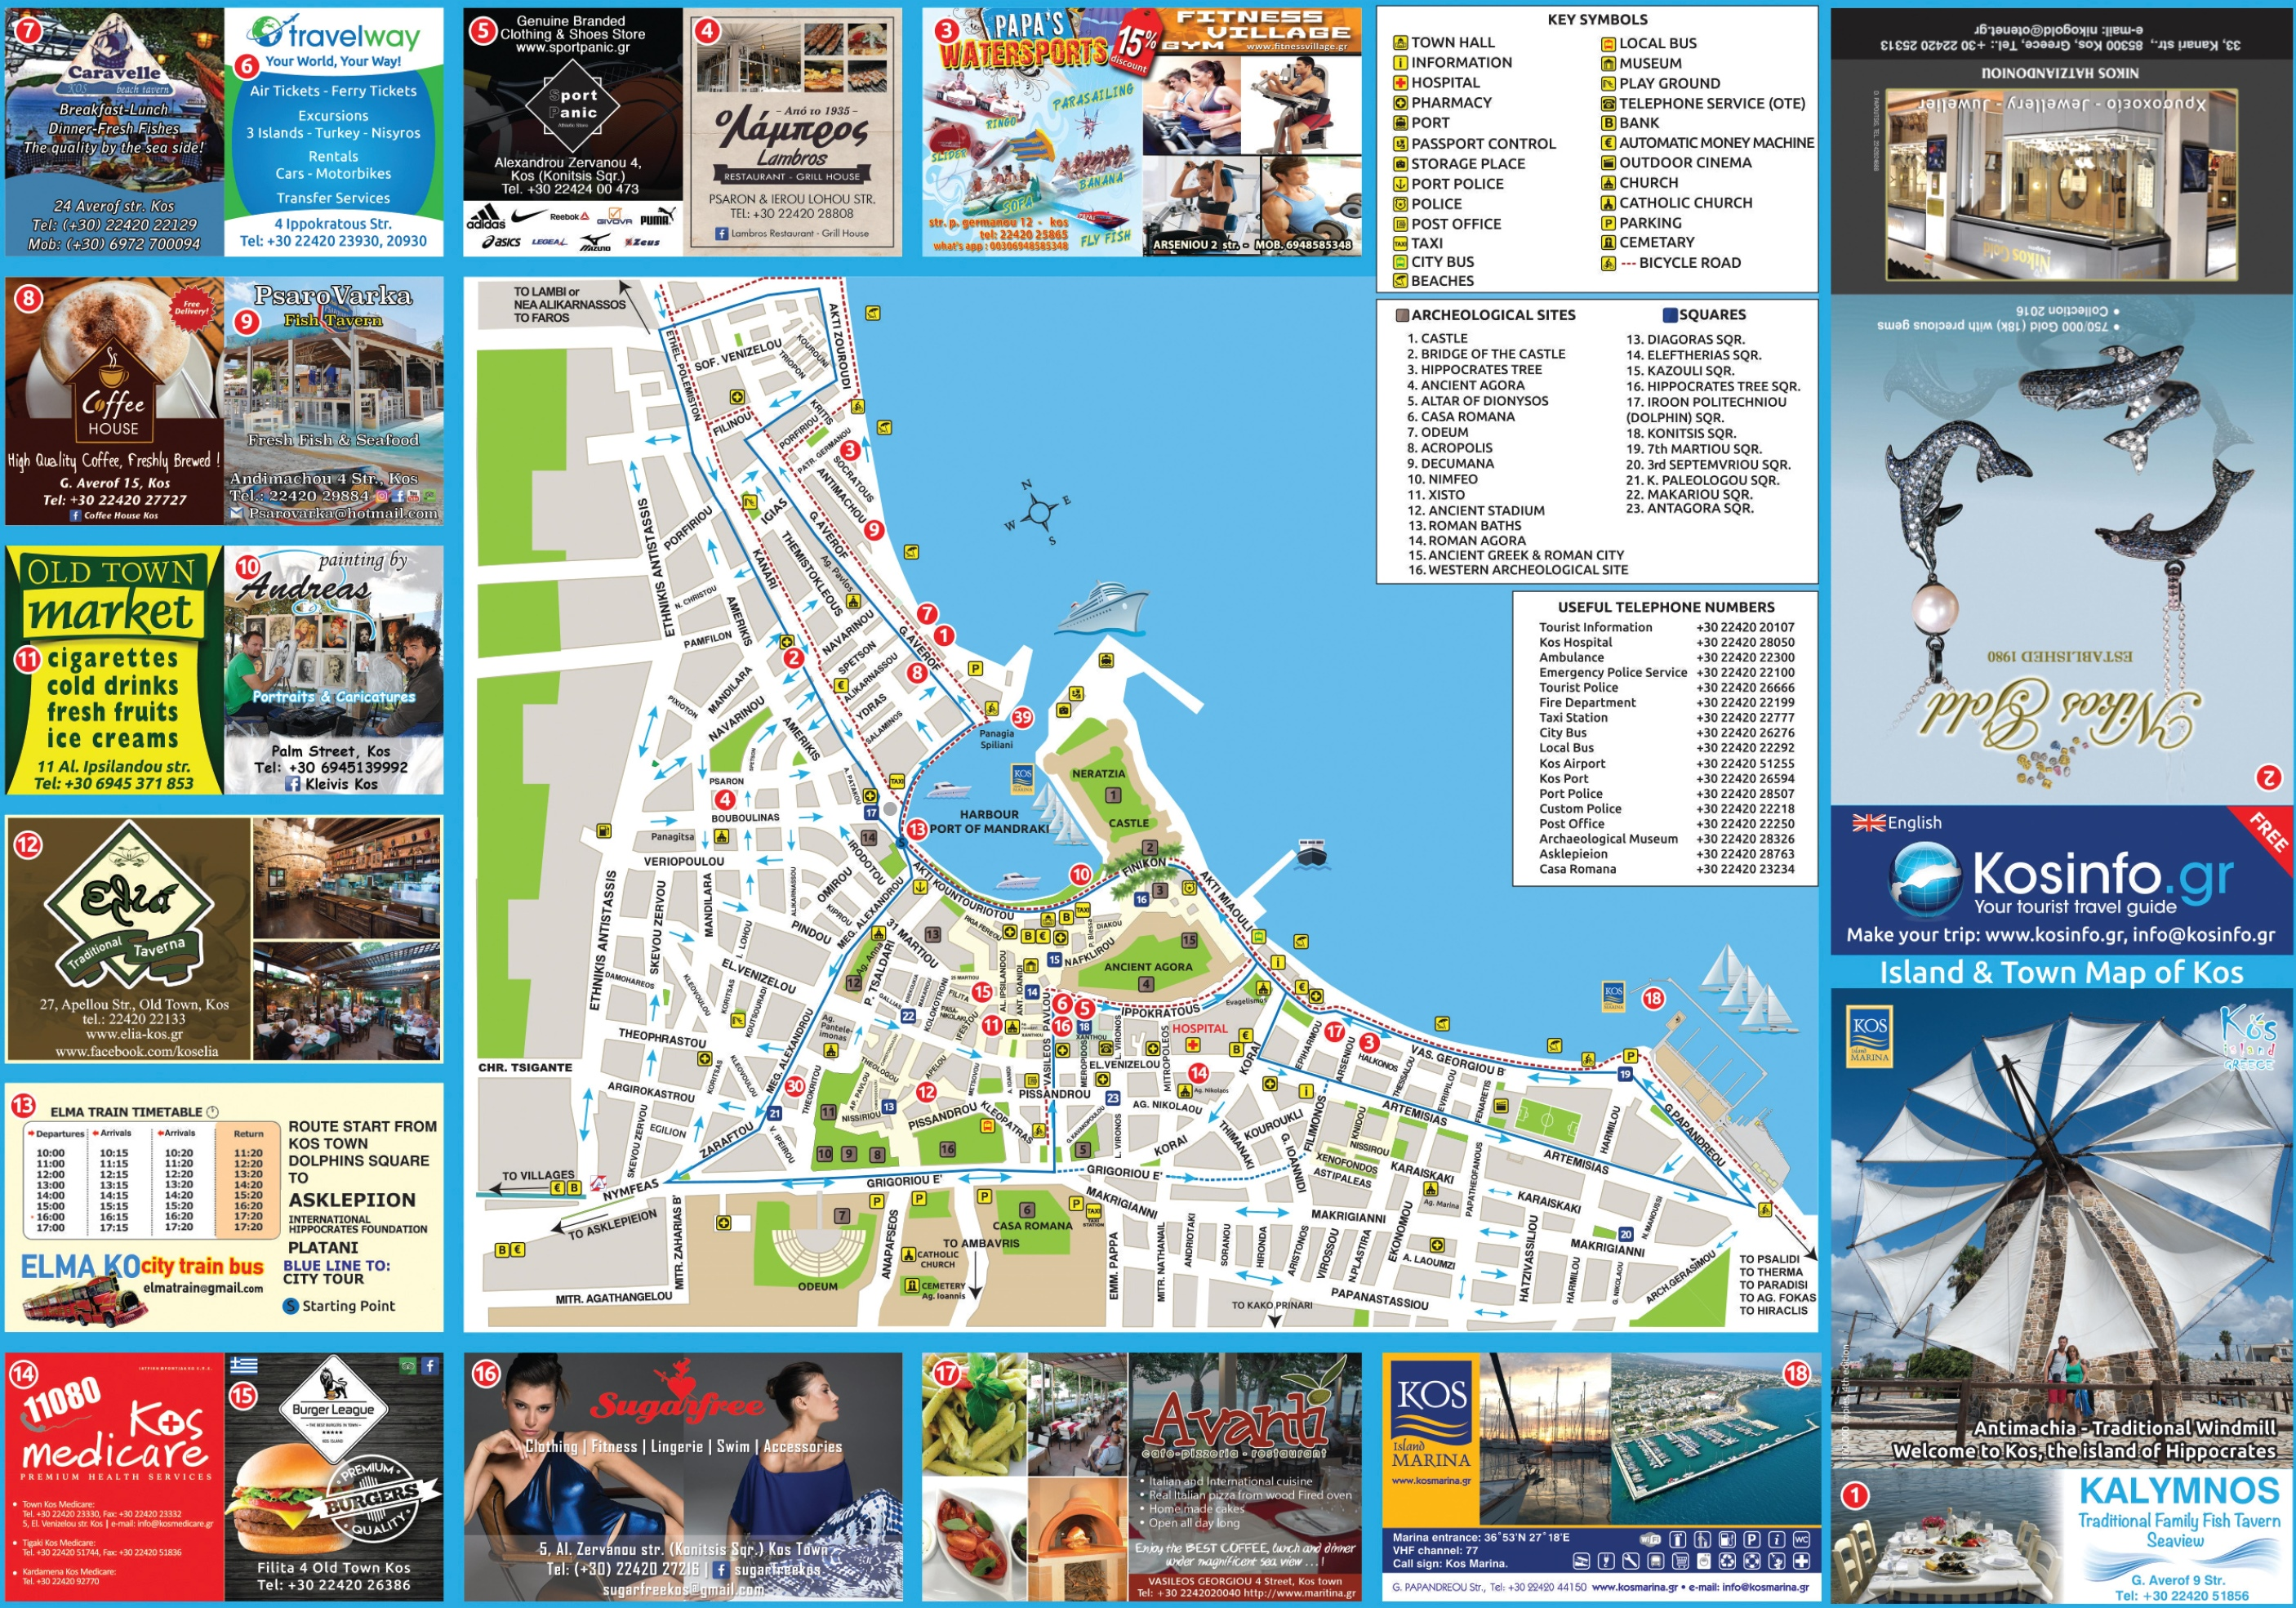 Kos city tourist attractions map kos city tourist attractions map gumiabroncs Choice Image